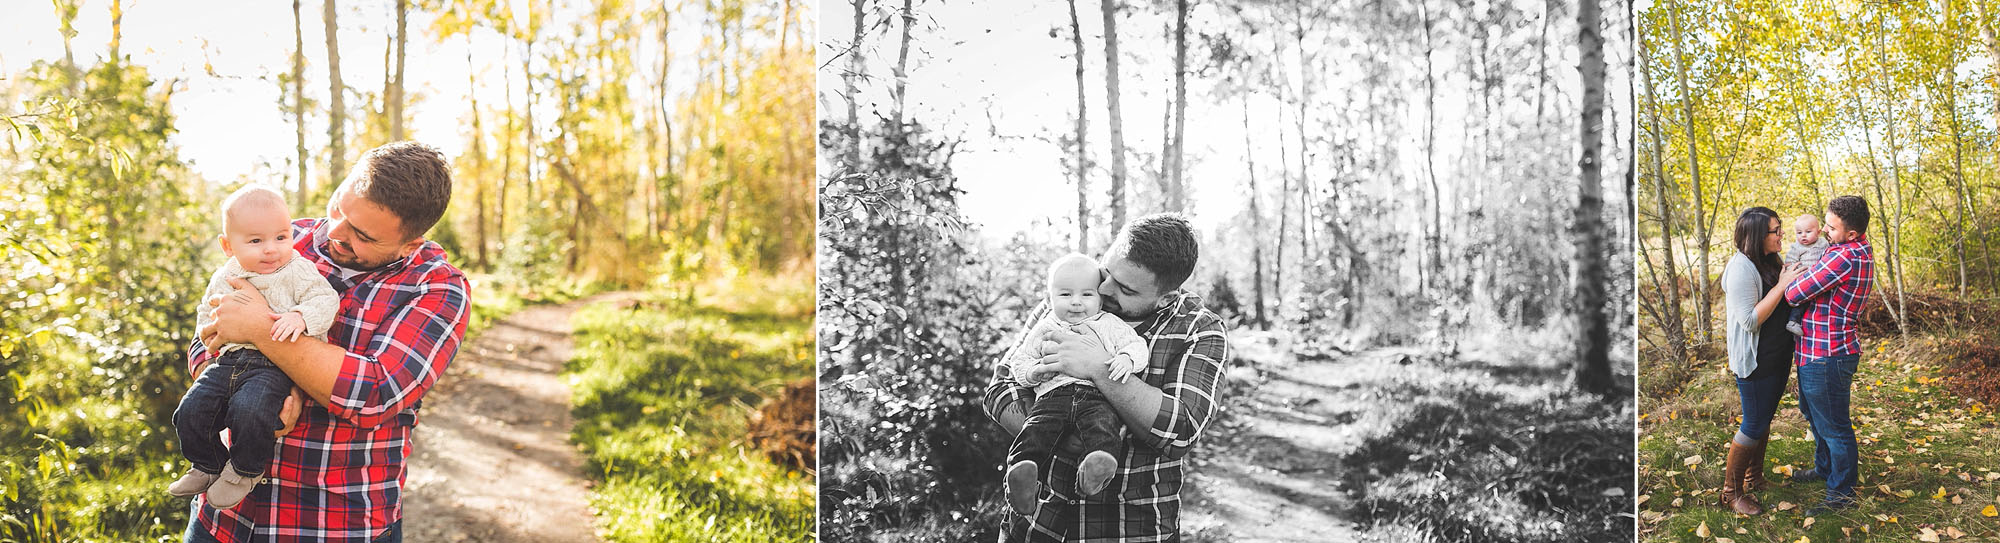 ashley vos photography seattle area lifestyle family and birth photography_0099.jpg